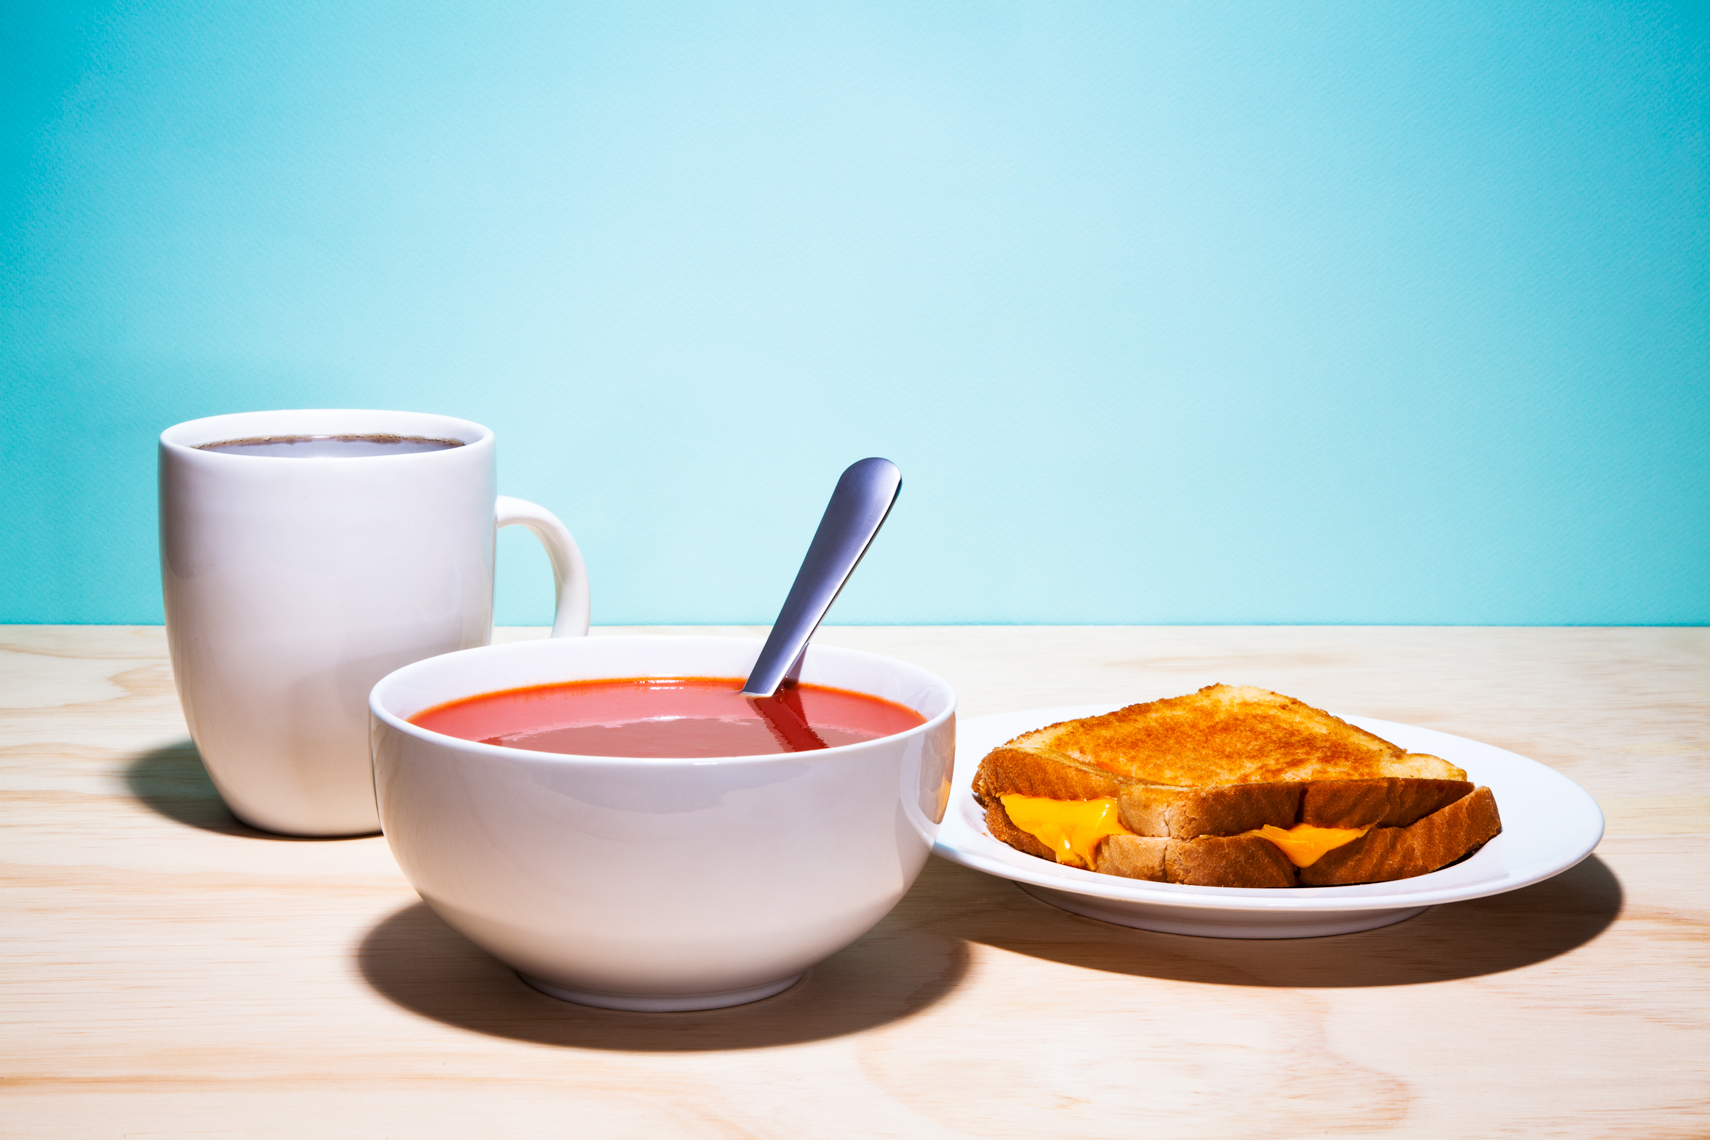 Tomato_Soup_Grilled_Cheese_Sandwhich_Diner